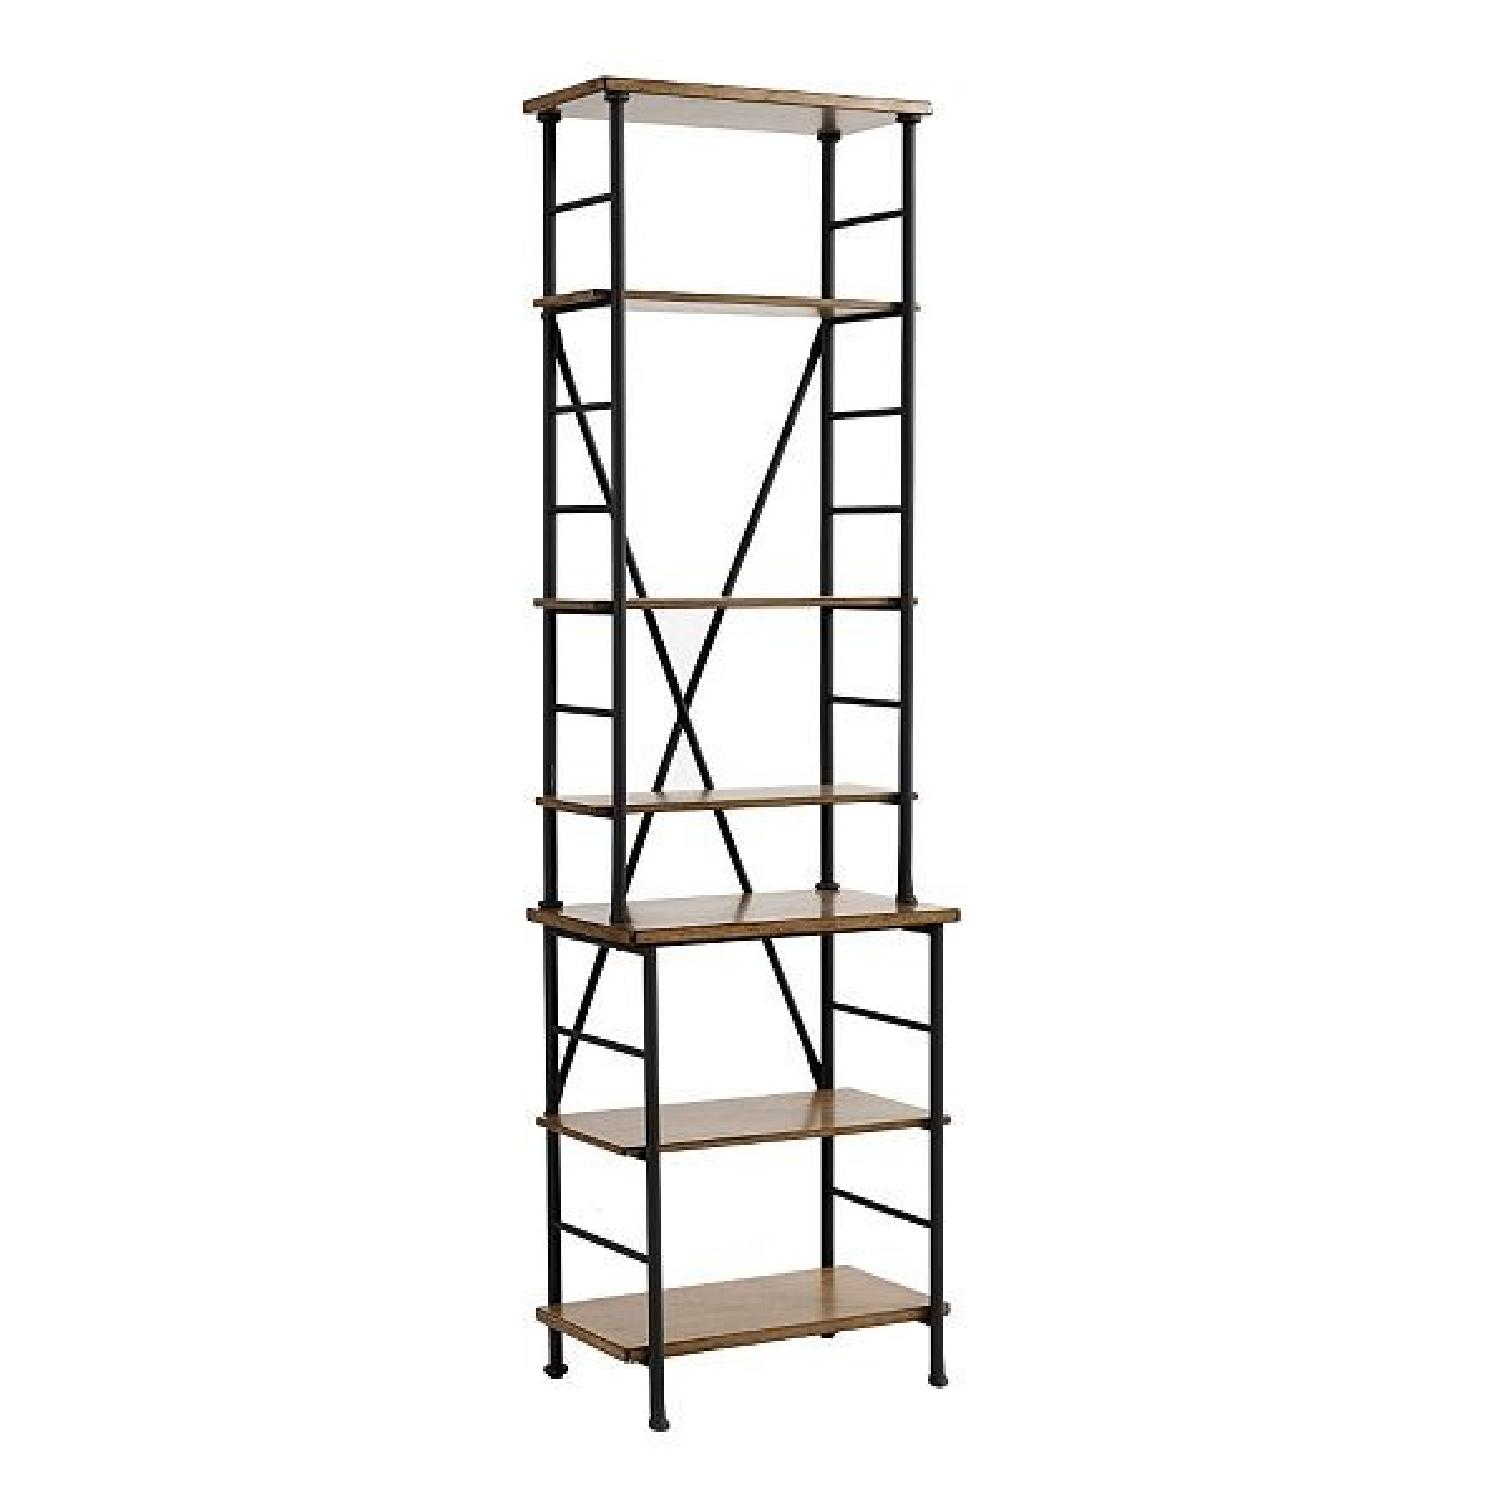 100 ballard designs rugs sale 100 free shipping code ballard designs rugs sale ballard design sonoma small tower bookshelf aptdeco